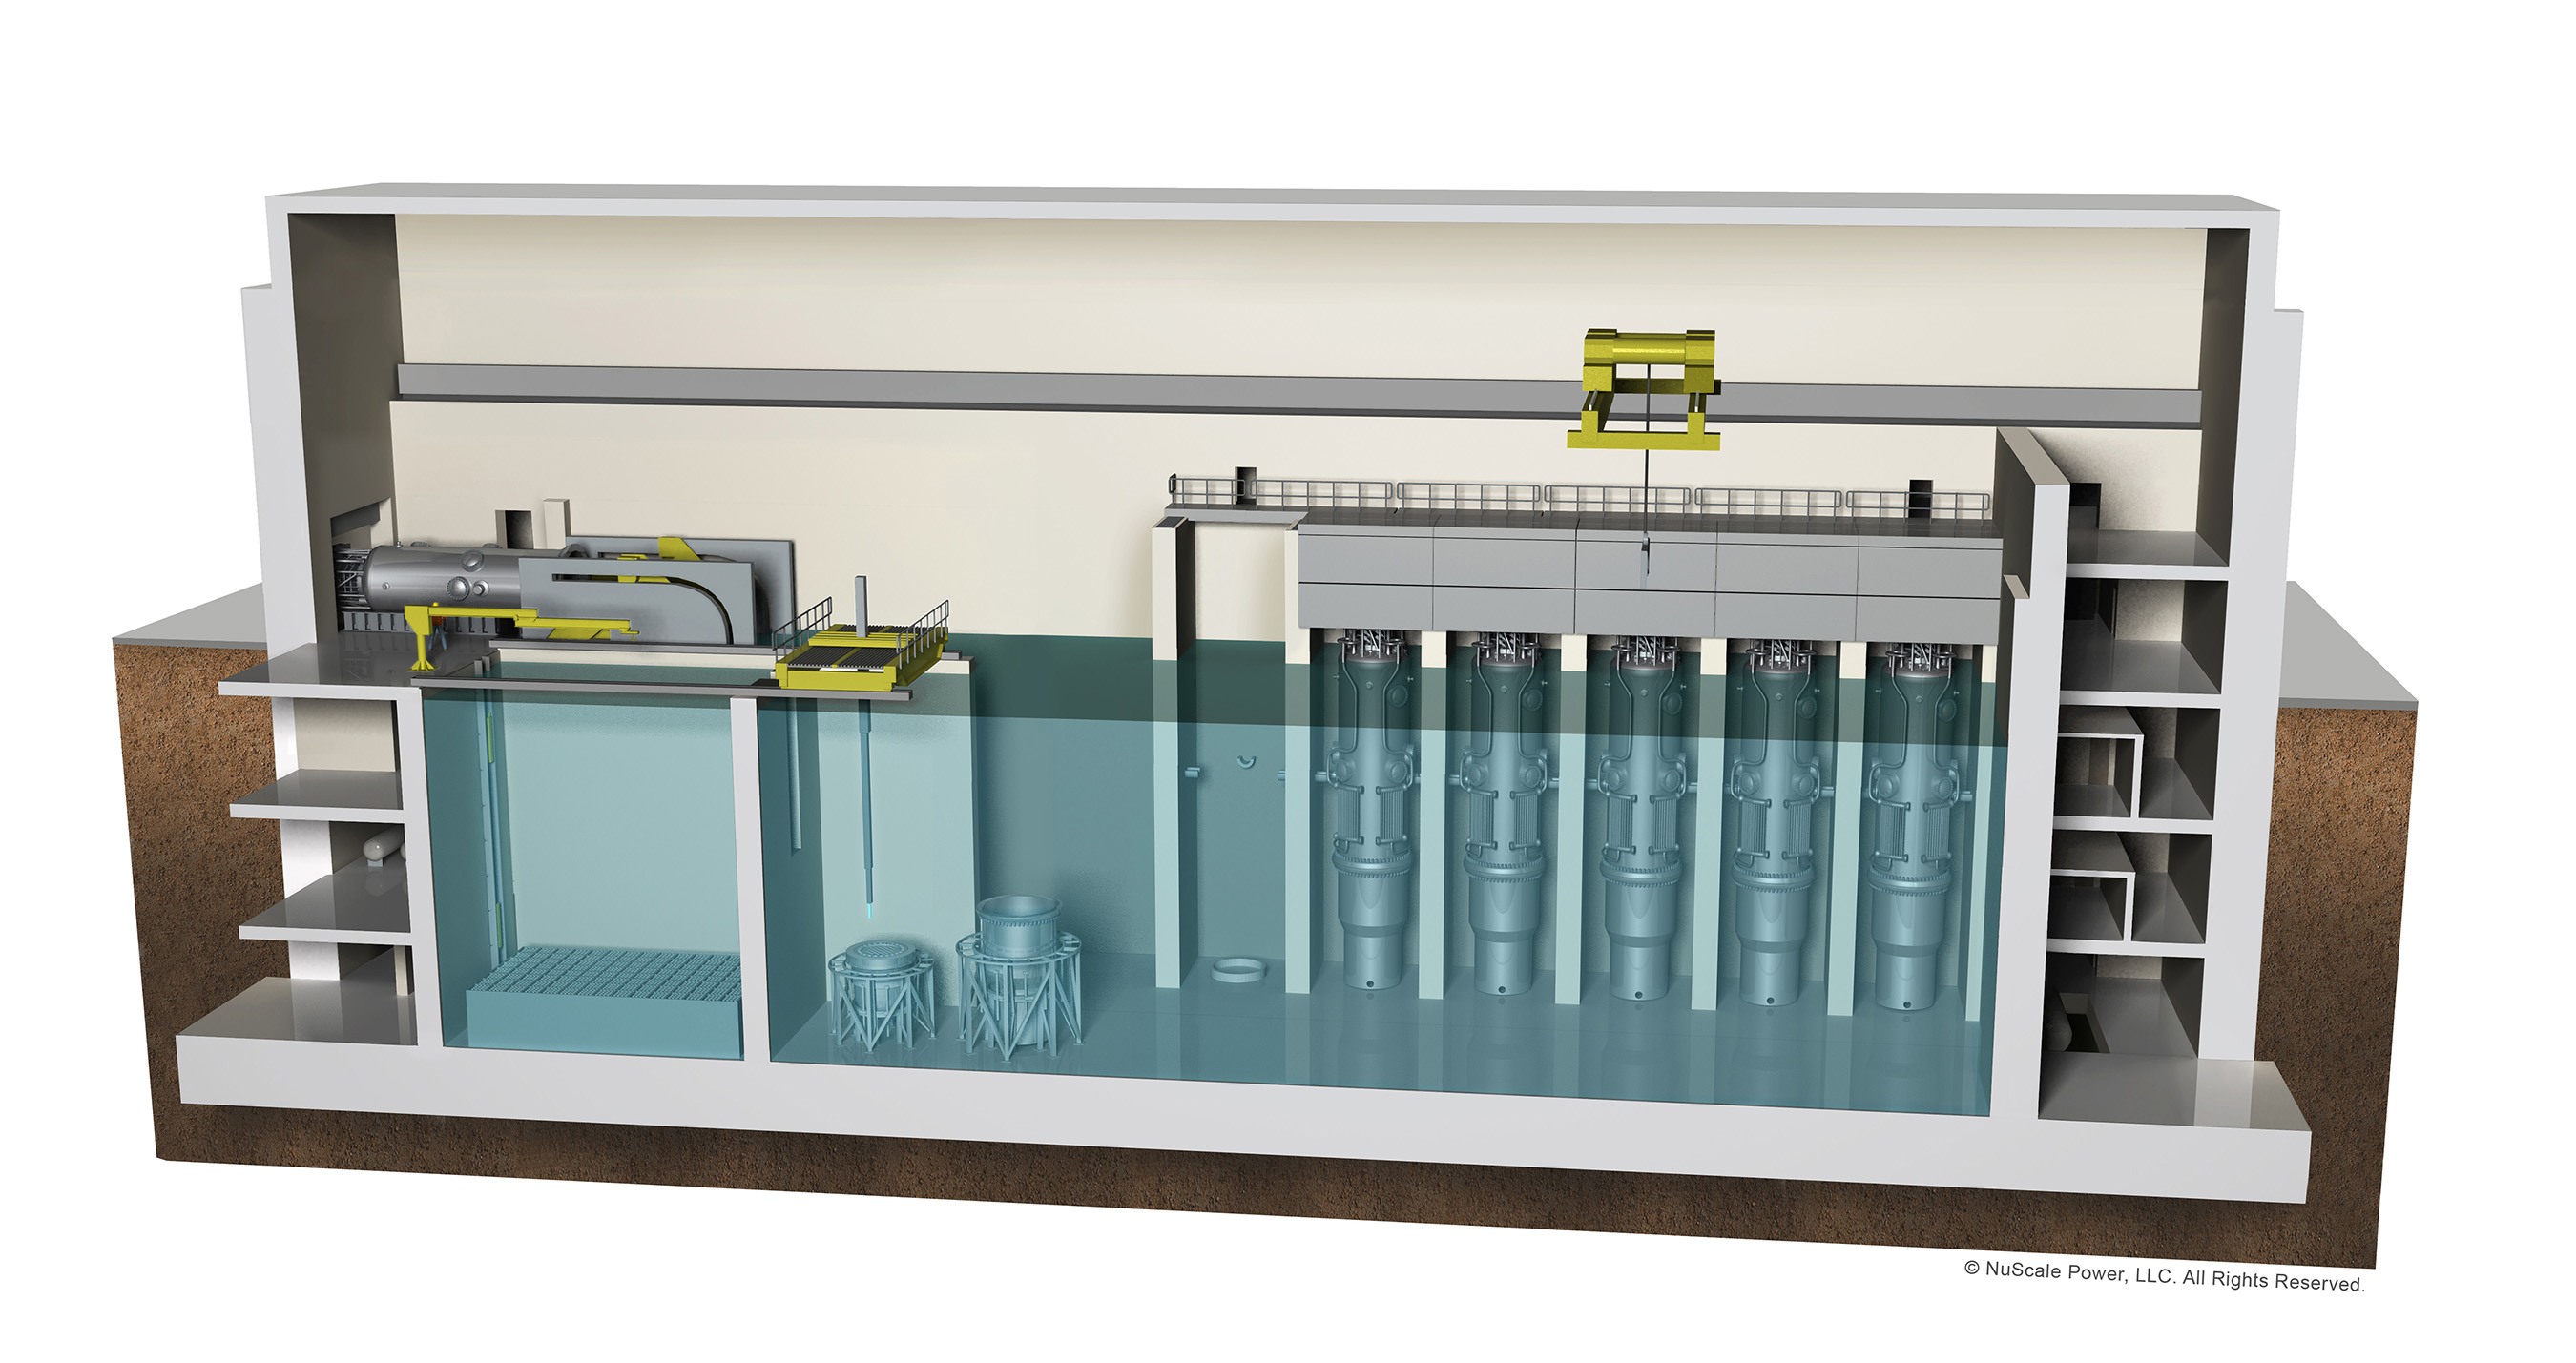 The NuScale Small Modular Reactor. Design simplicity allows the NuScale Power Module™ to be factory-built off-site. This makes the plant faster to construct, and less expensive to build and operate.